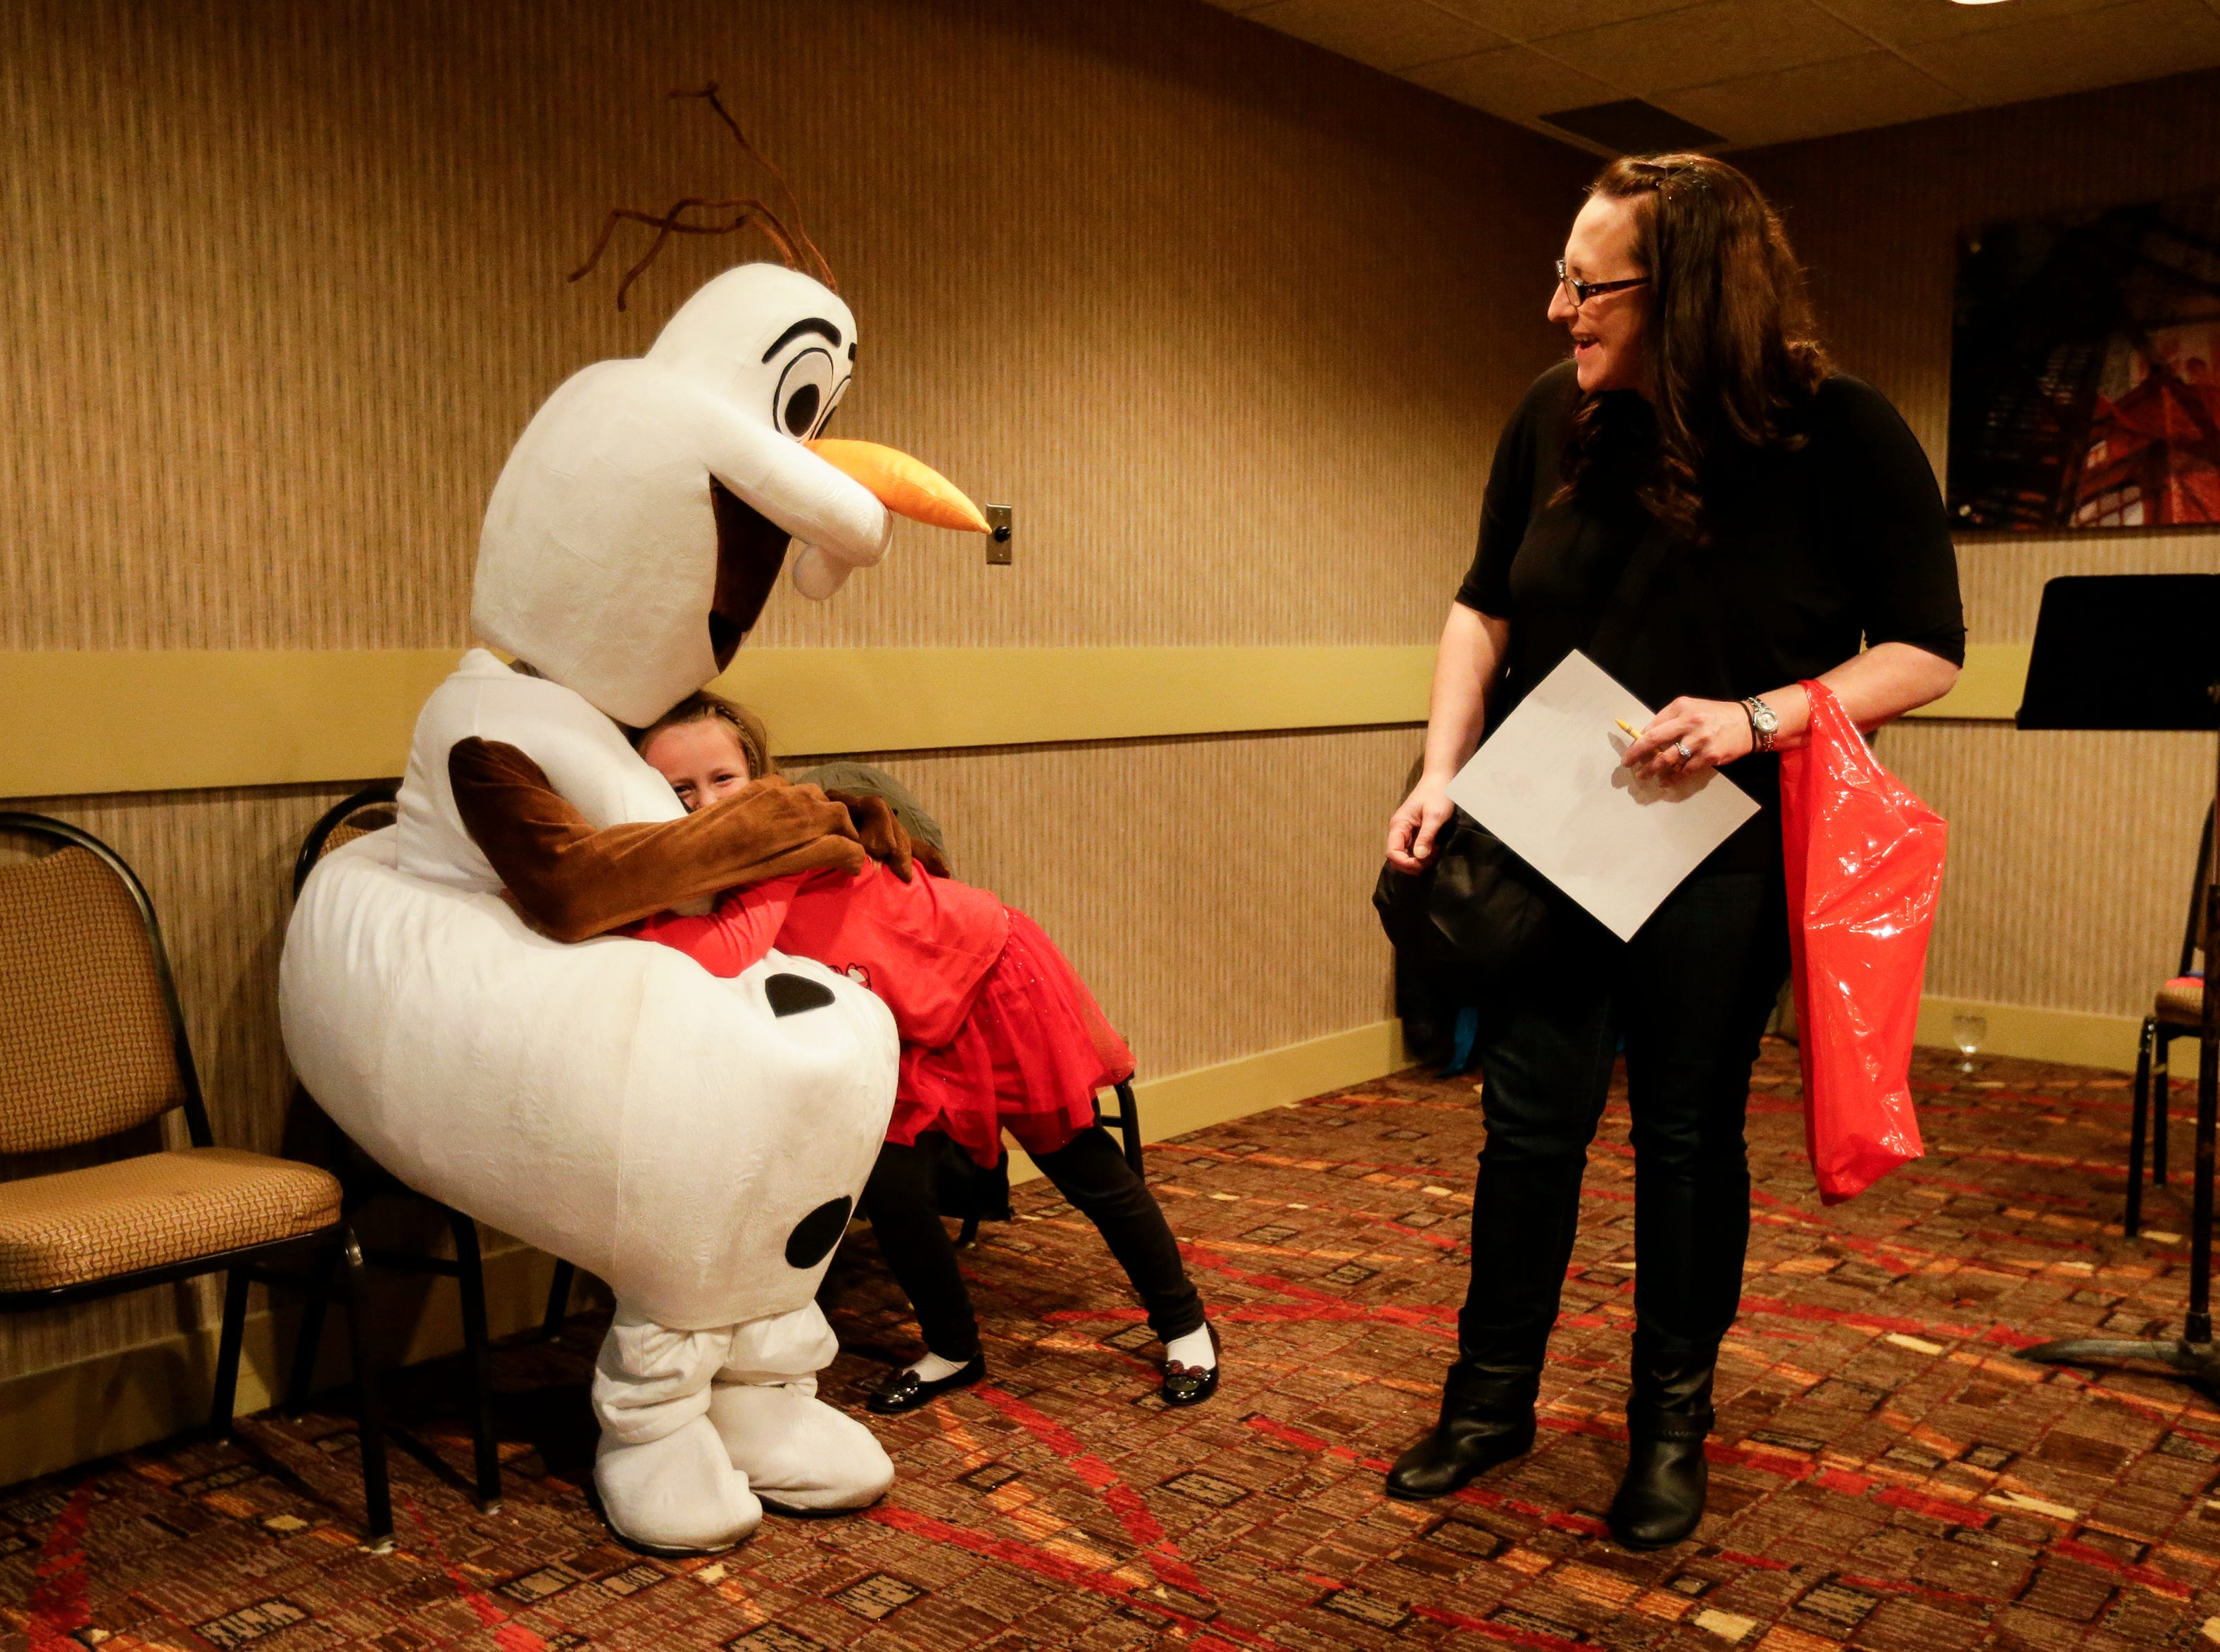 Lily Reimer, 6, hugs Olaf at Santa's North Pole at the Holiday Inn Saturday, December 8, 2018, in Manitowoc, Wis. Joshua Clark/USA TODAY NETWORK-Wisconsin